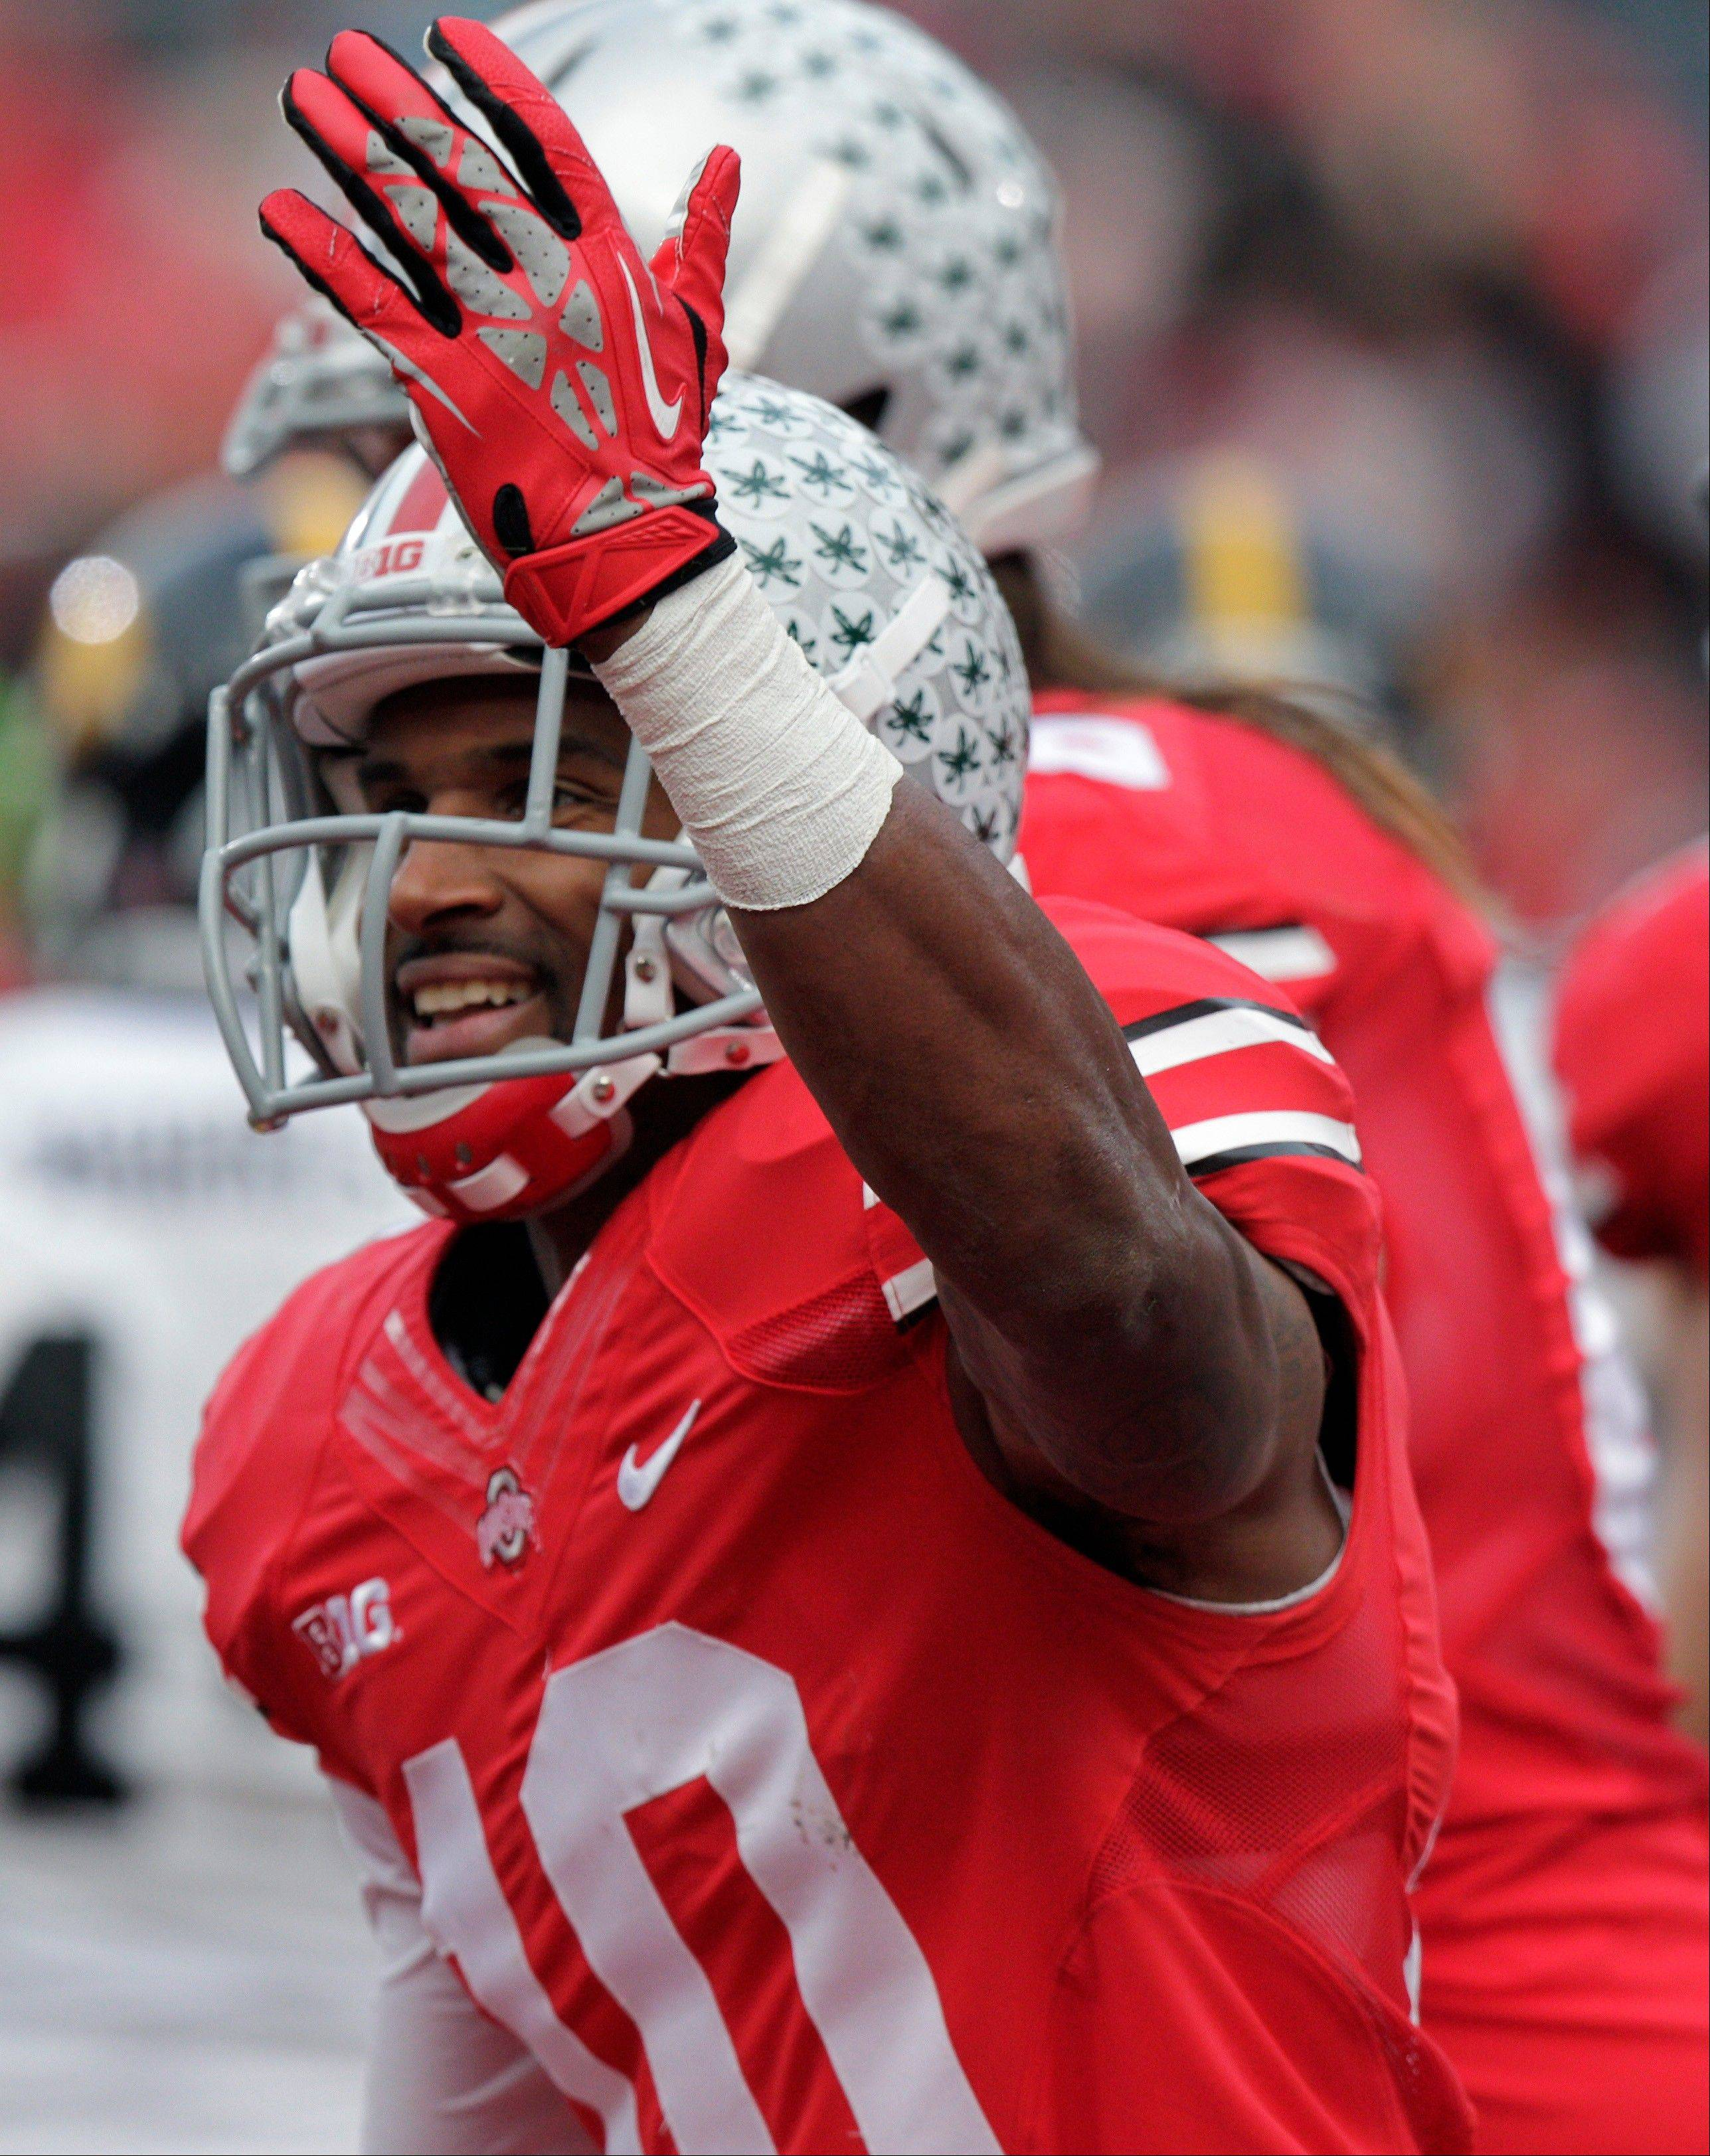 Ohio State wide receiver Corey Brown celebrates his touchdown against Iowa last Saturday. The Buckeyes have won 19 straight games dating back to last season.